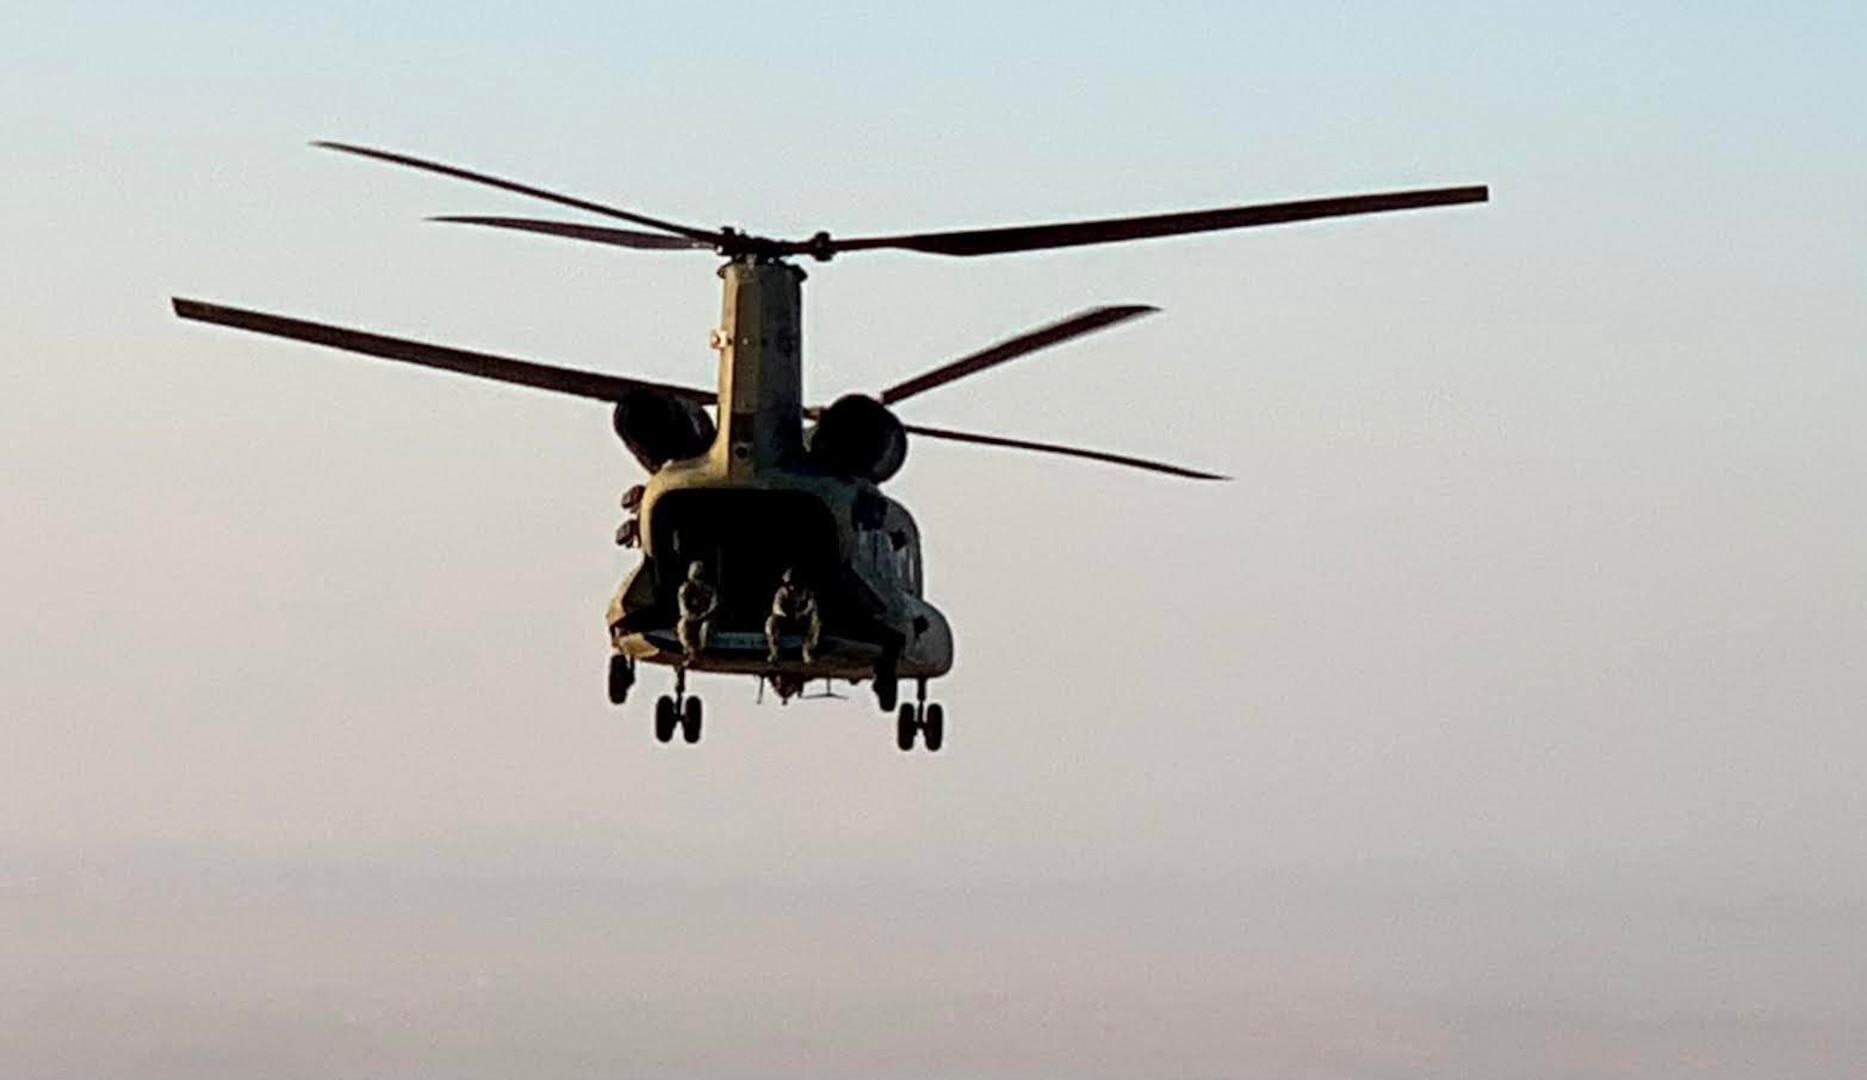 A CH-47 Chinook helicopter, operated by Soldiers with Bravo Company, 3-238th General Support Aviation Battalion, 28th Expeditionary Combat Aviation Brigade, flies over the 28th ECAB's area of operations in the Middle East during a routine flight mission. Soldiers with the 28th ECAB recently passed the midway point of their deployment.